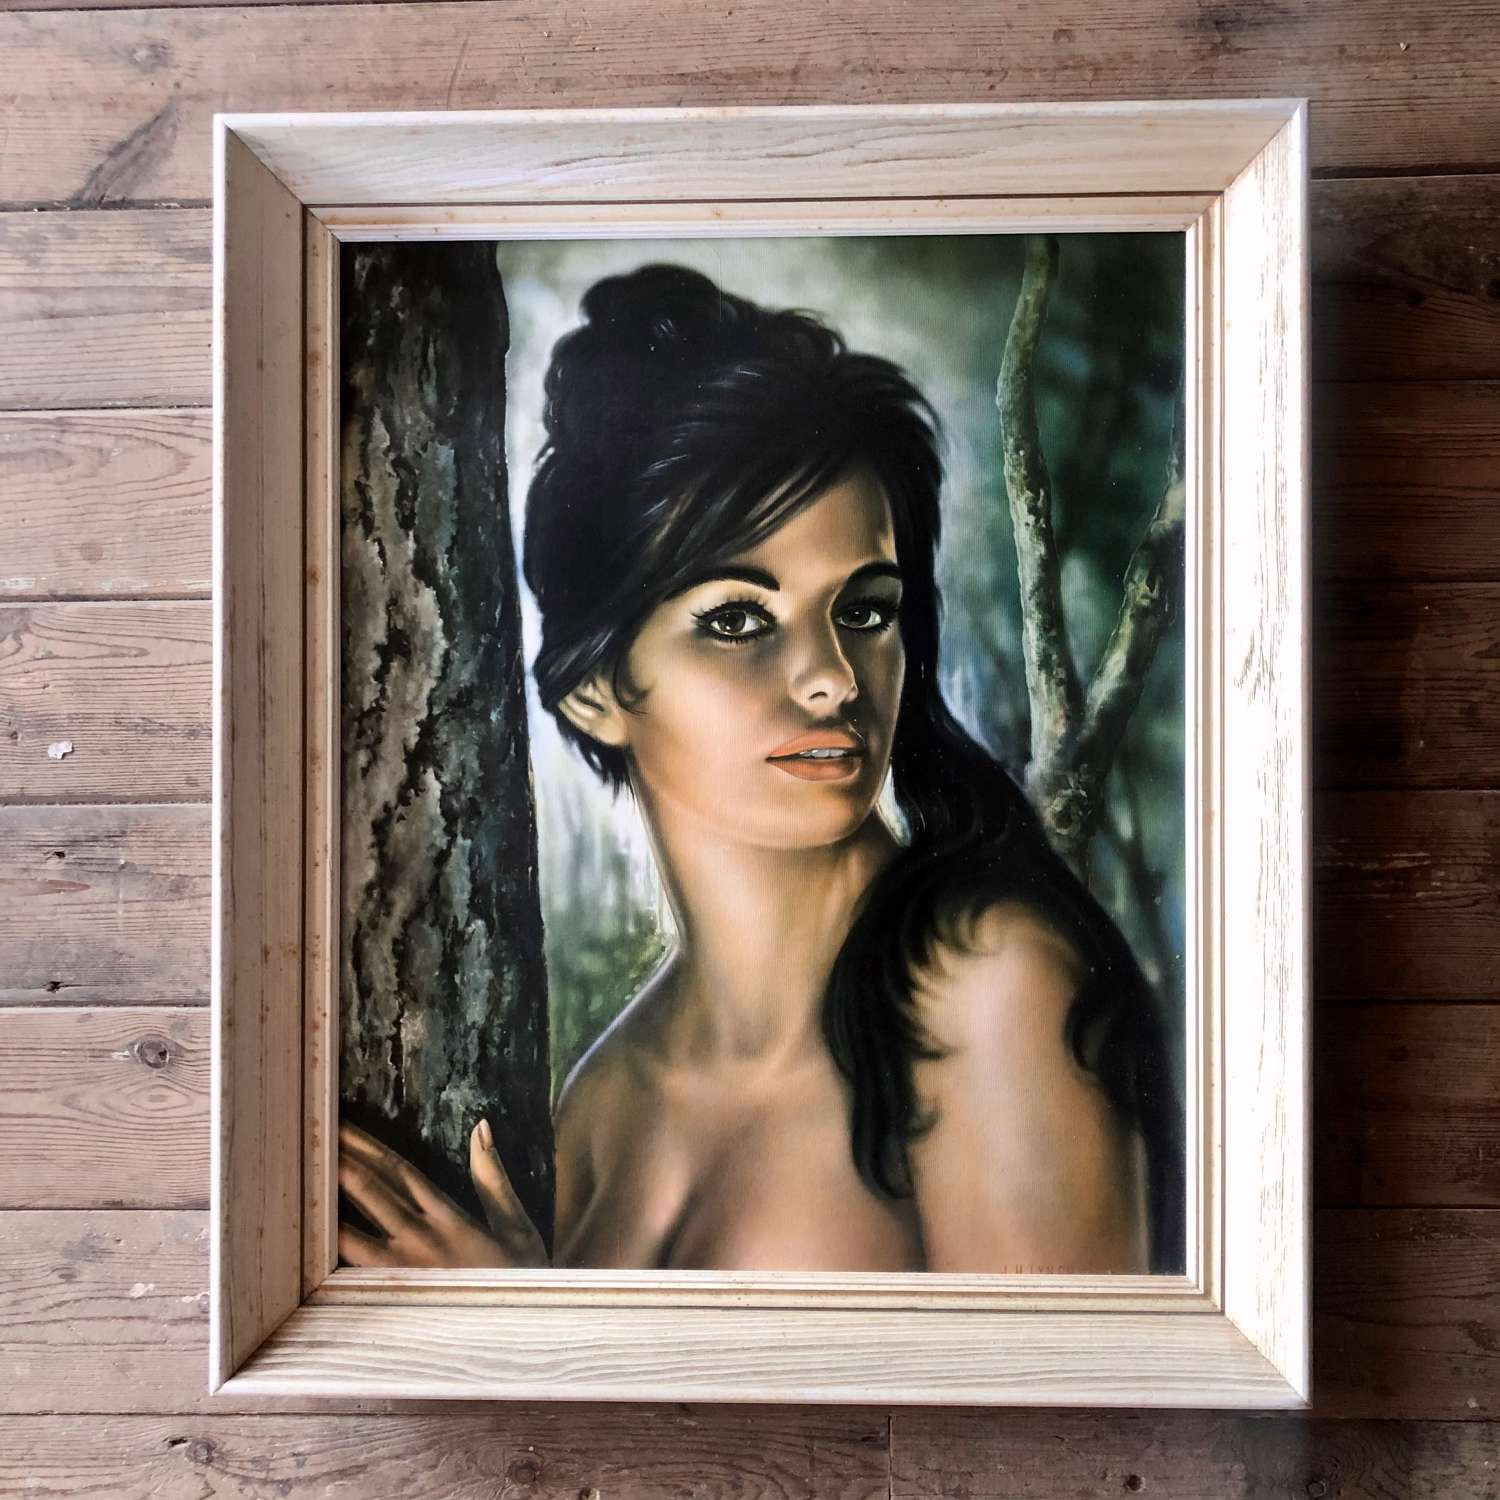 Original J H Lynch 'Tina' 1960s Framed Print.